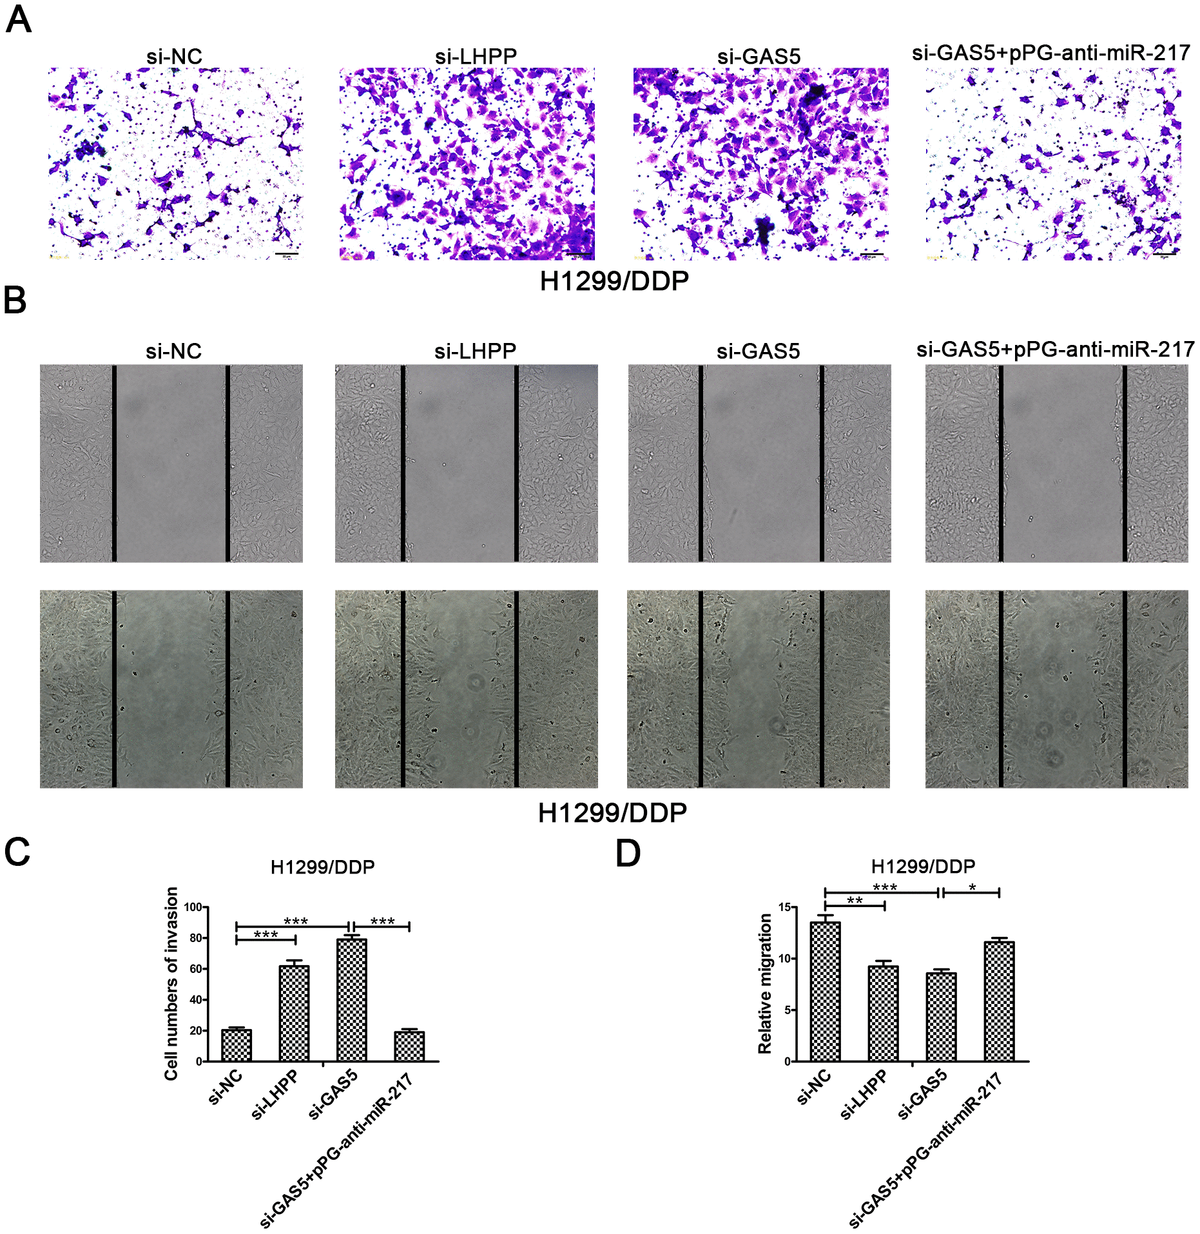 Silencing LHPP or GAS5 promotes cisplatin-resistant NSCLC cell migration and invasion. (A, C) Transwell invasion assays were used to measure the invasion of H1299/DDP cells transfected with si-NC, si-LHPP, si-GAS5 or si-GAS5 + pPG-anti-miR-217. (B, D) Wound healing assays were used to measure the migration of H1299/DDP cells transfected with si-NC, si-LHPP, si-GAS5 or si-GAS5 + pPG-anti-miR-217. *p